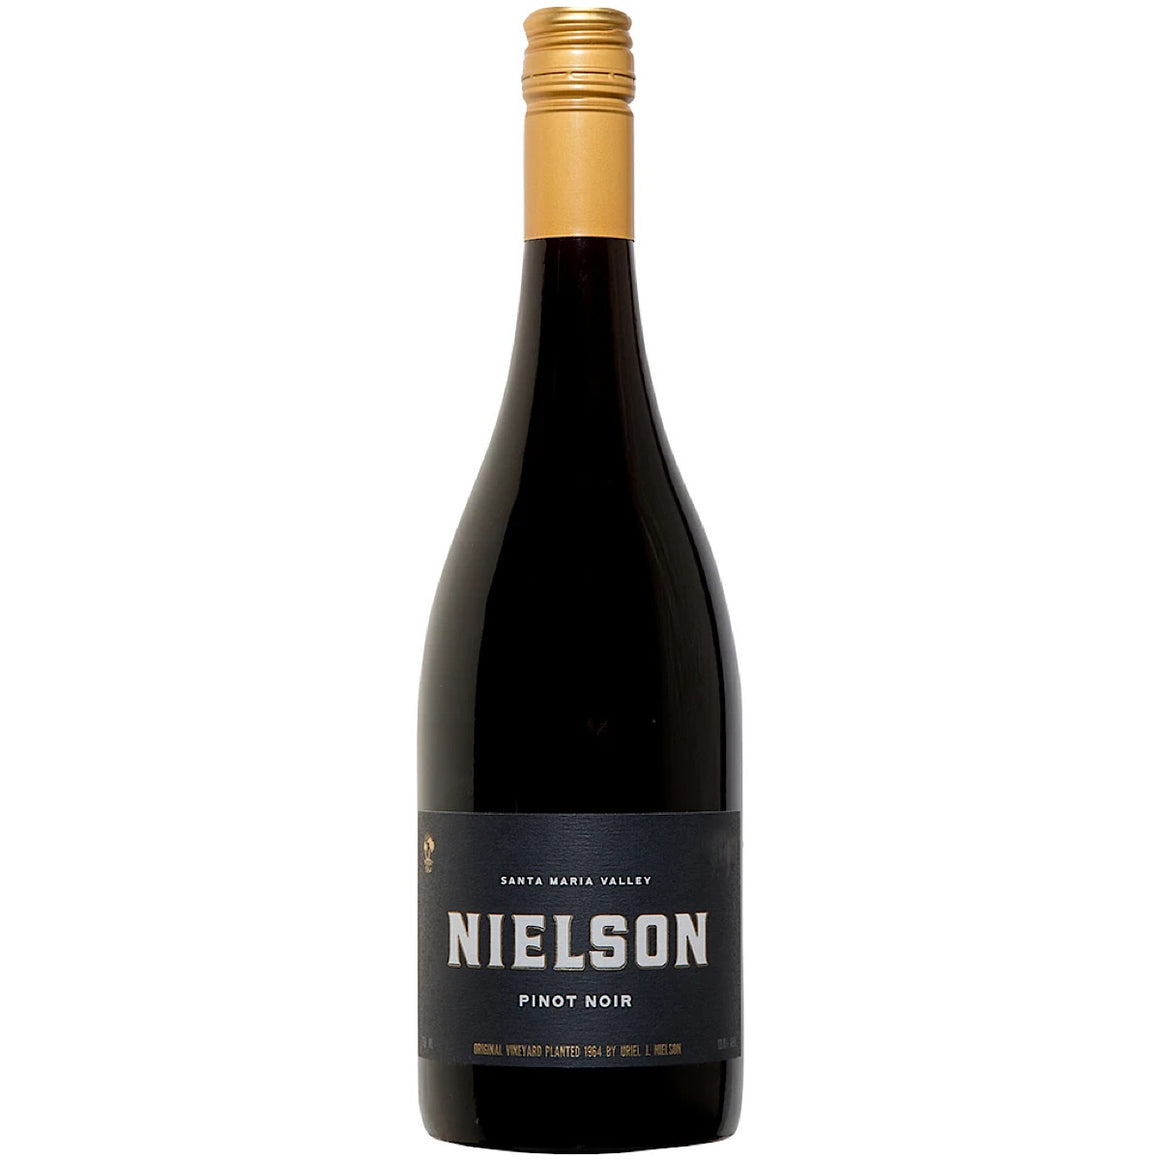 Nielson Santa Maria Valley Pinot Noir 2015 6 Bottle Case 75cl